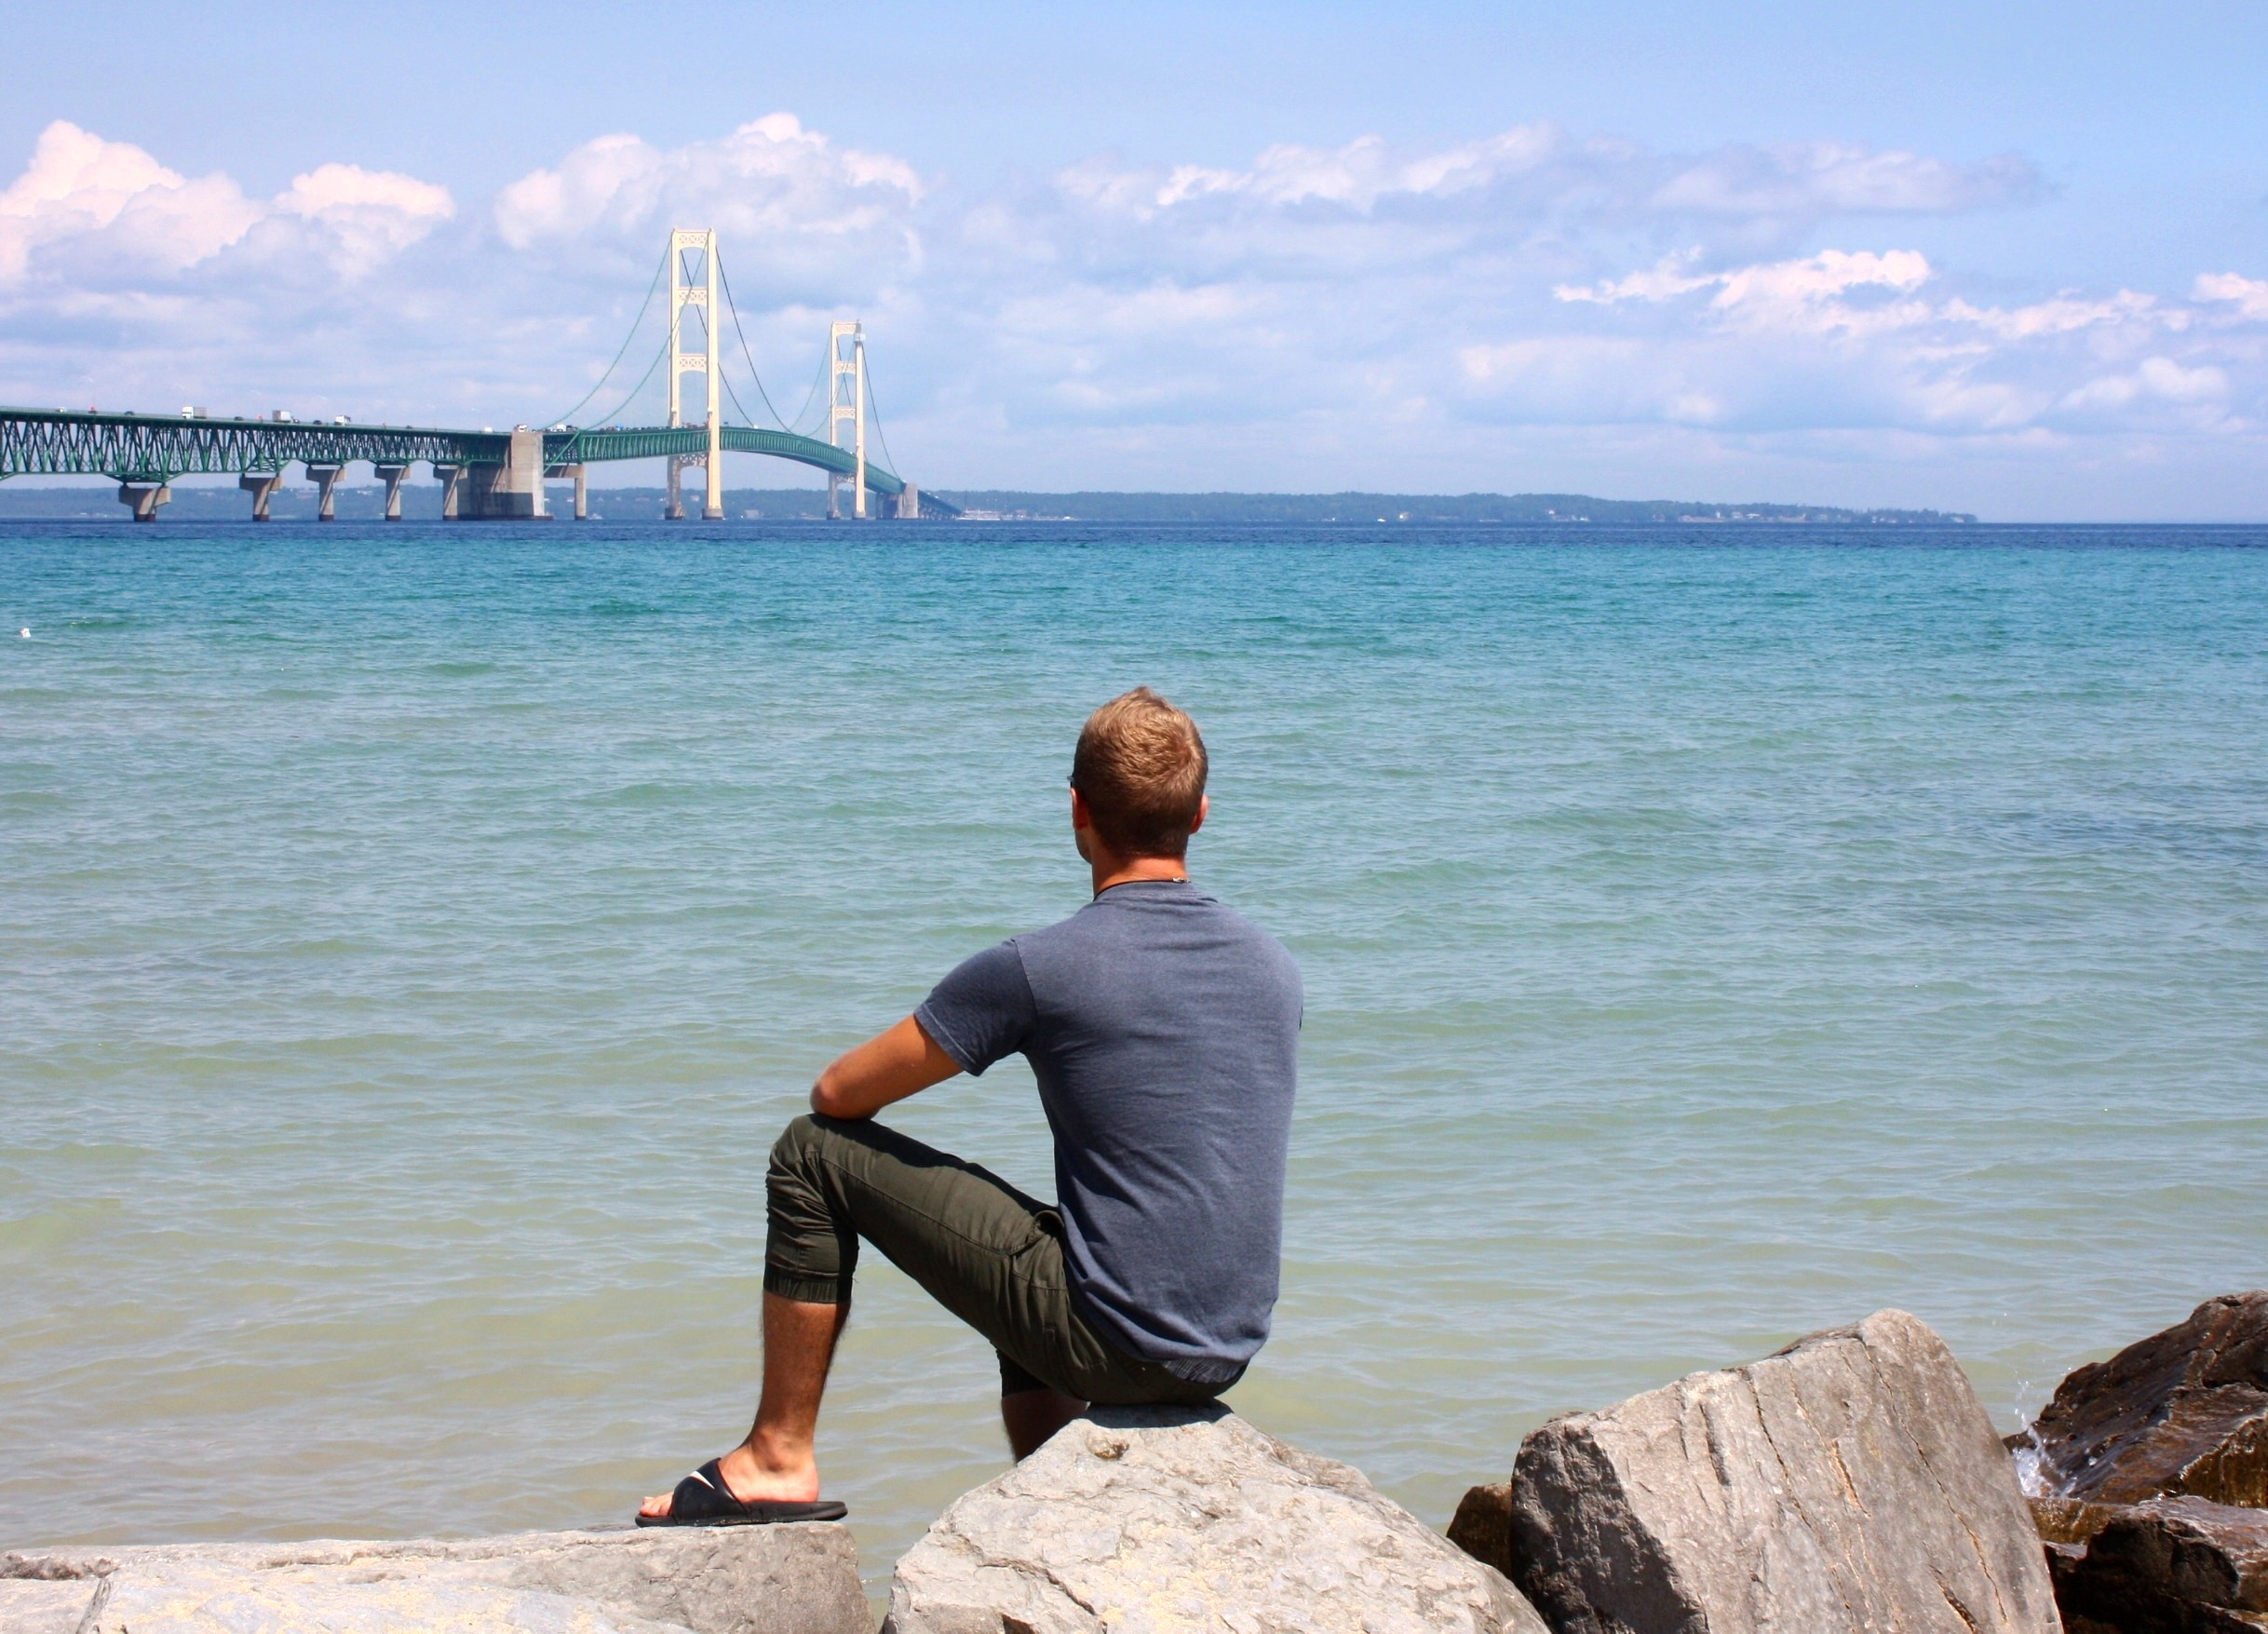 Looking back at the Mackinac Bridge …and on a transformational year